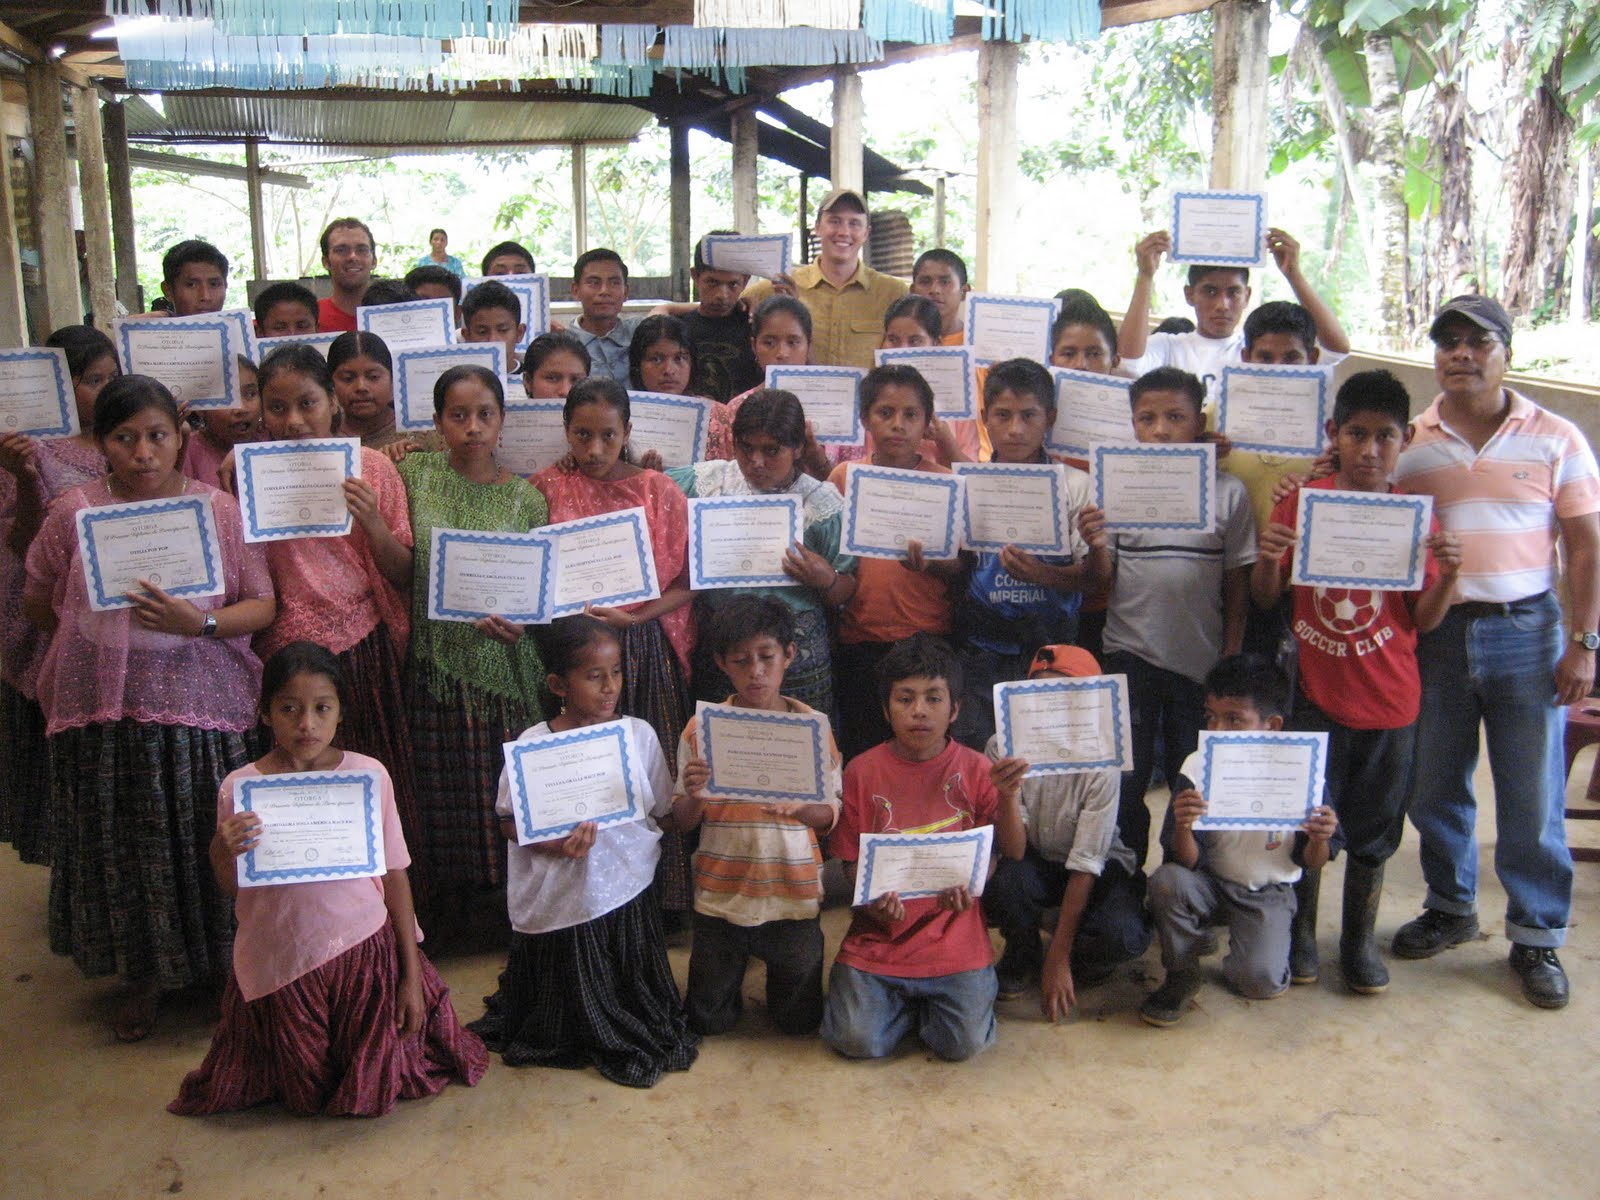 BVC Coban 2009 kids with certificates.JPG